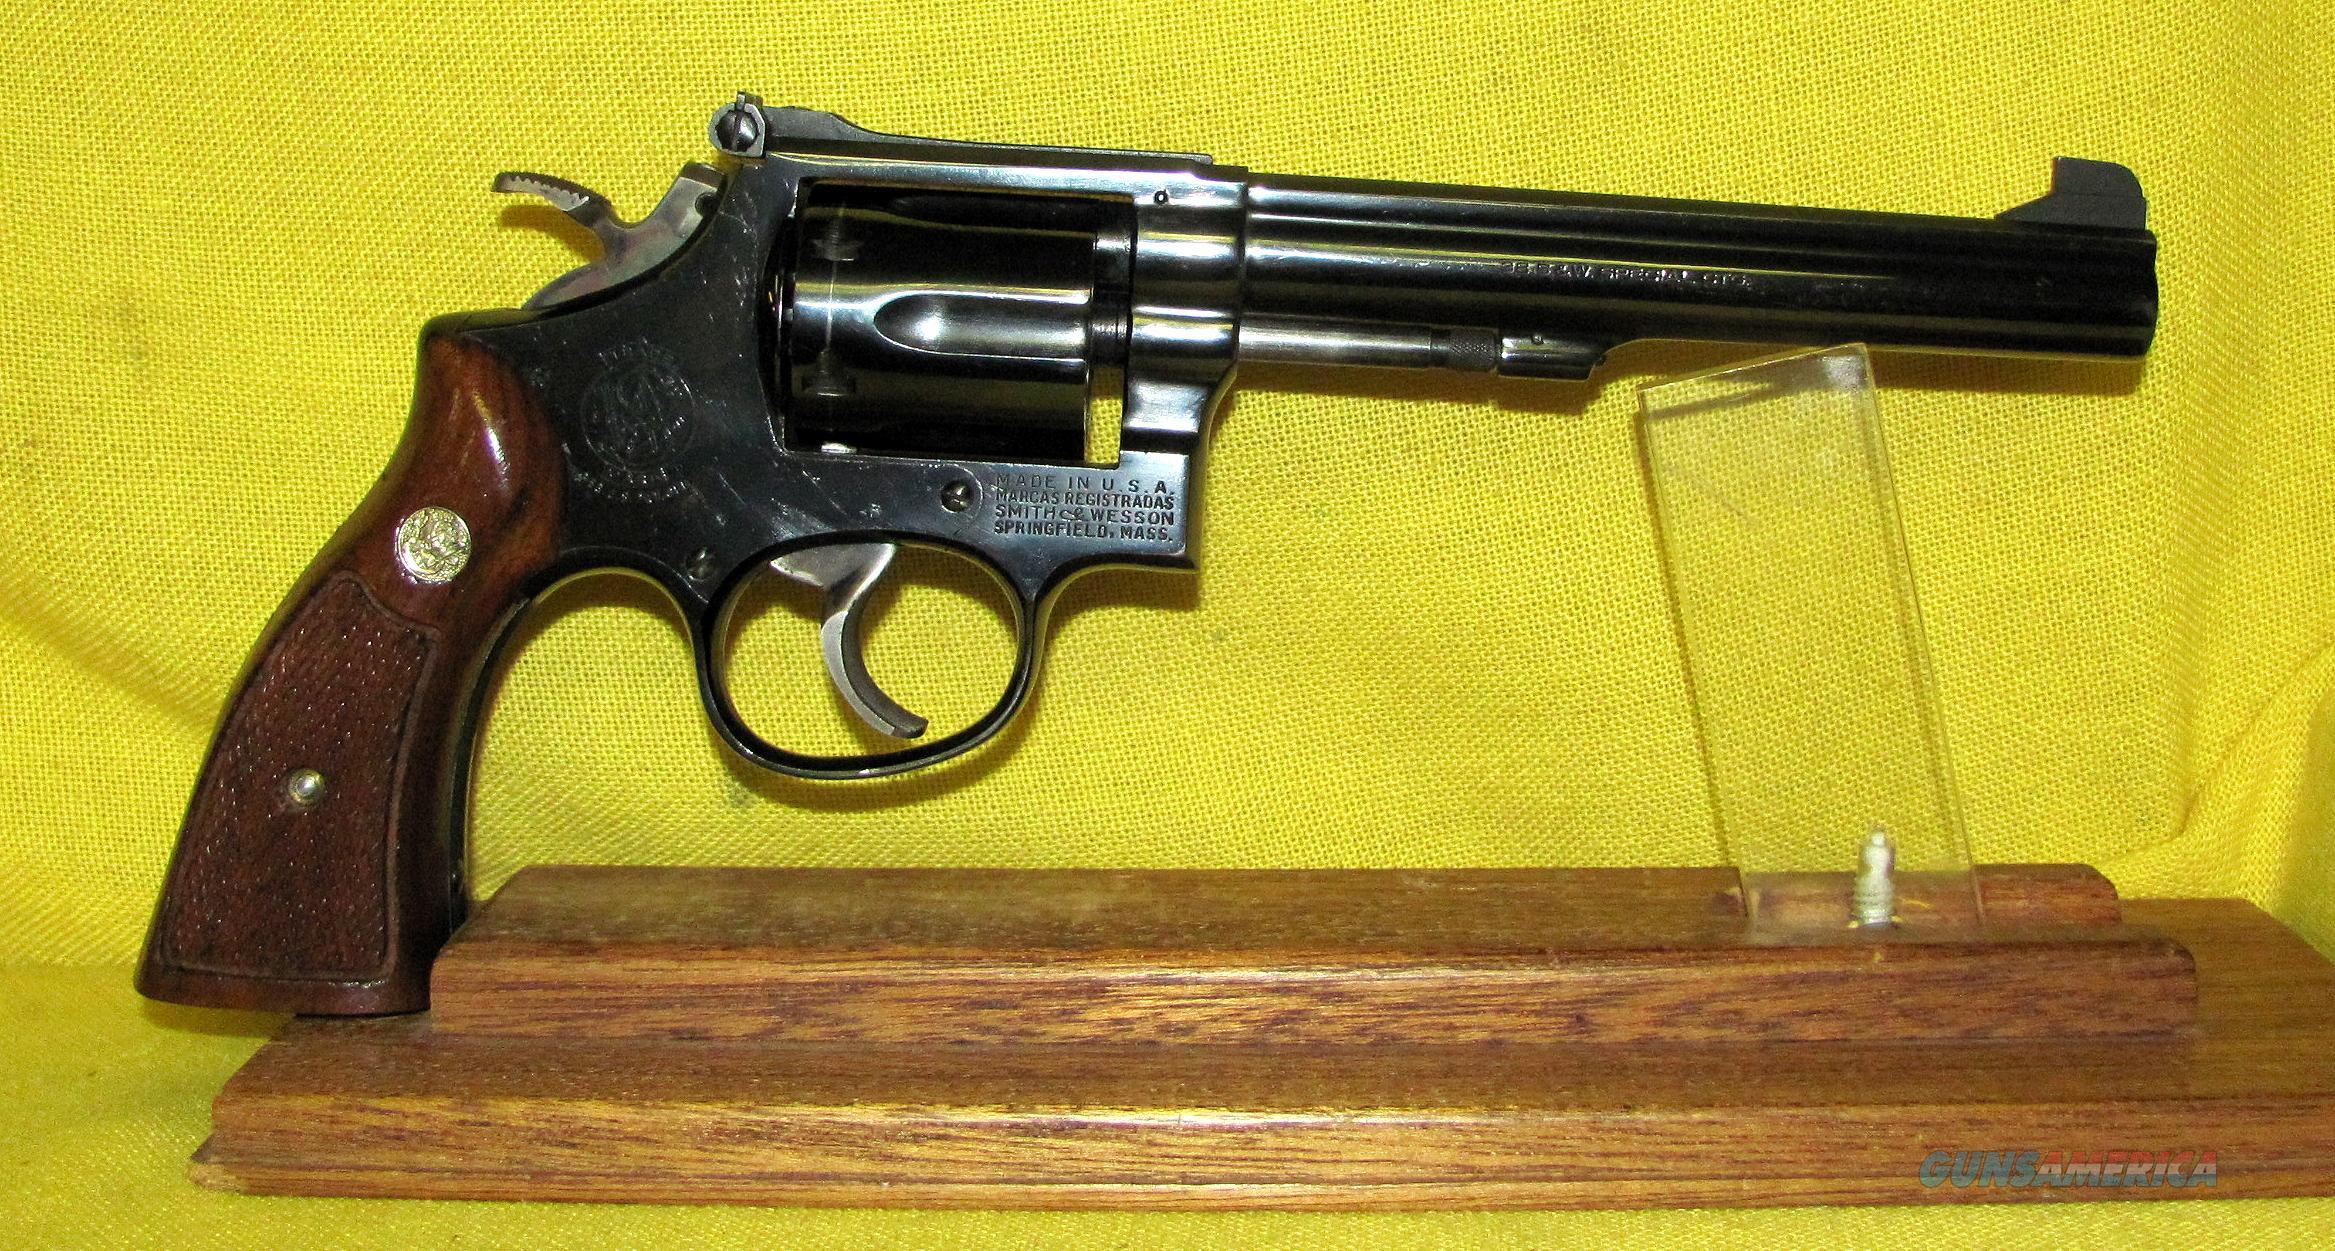 S&W 14-2  Guns > Pistols > Smith & Wesson Revolvers > Full Frame Revolver